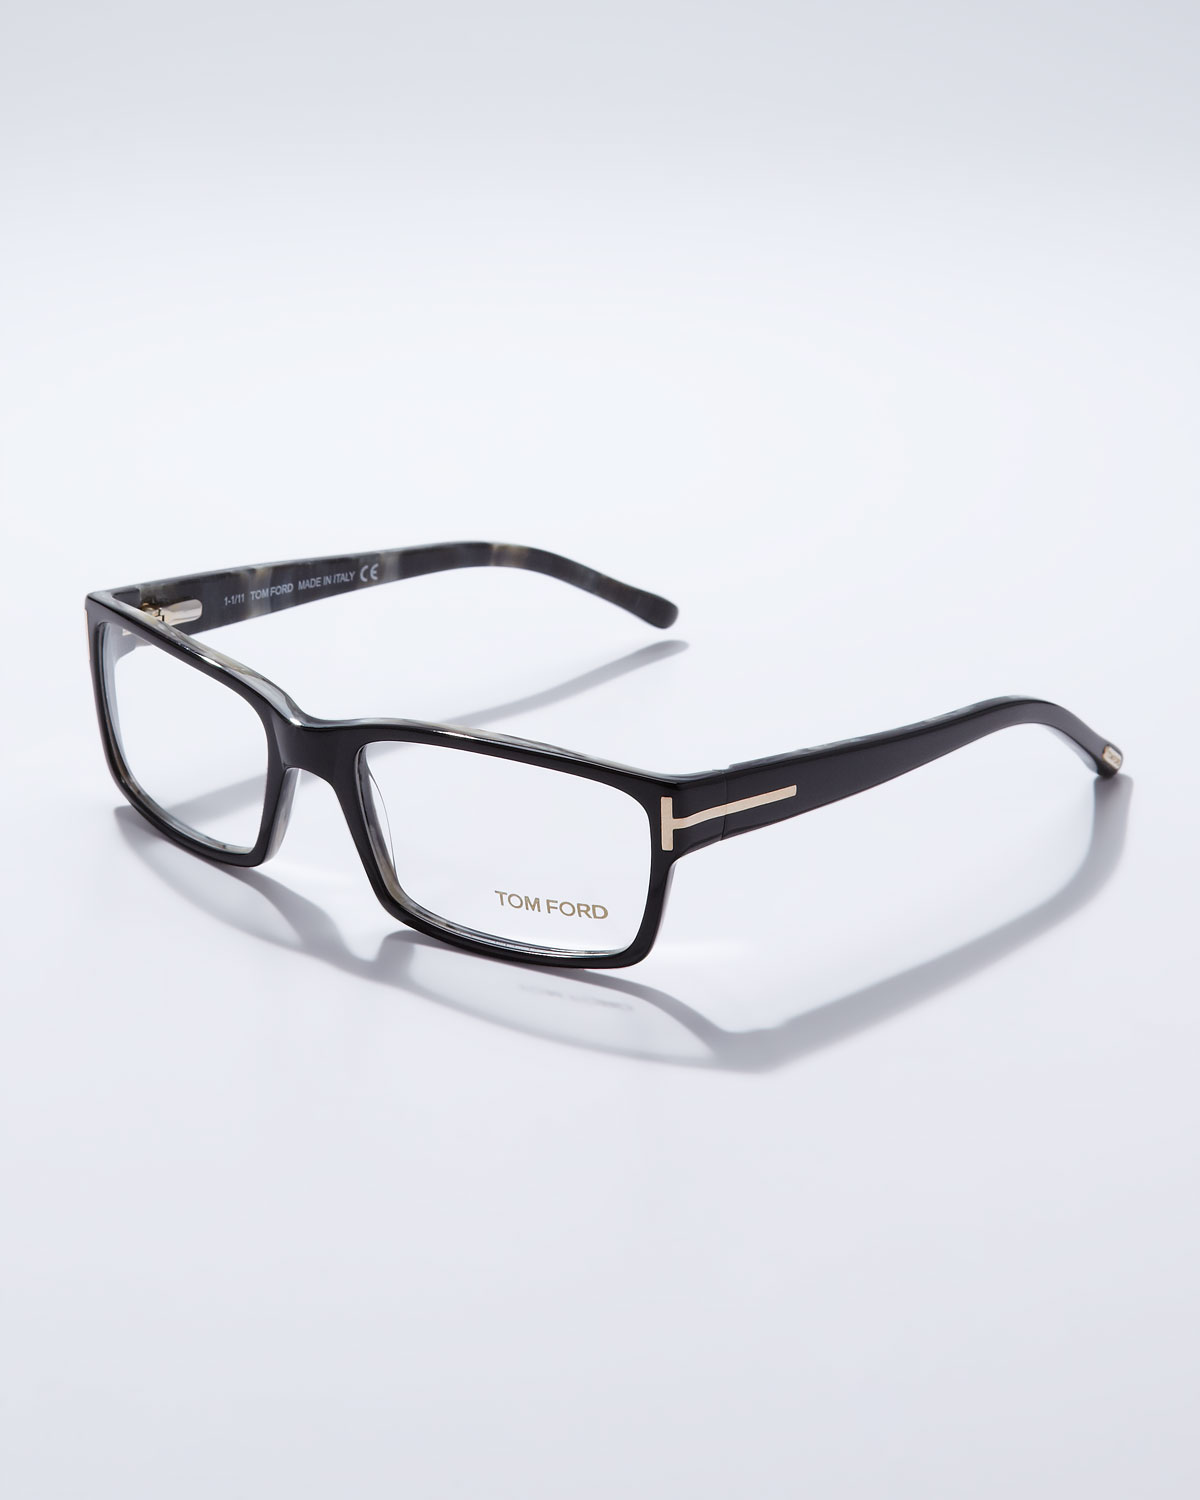 a2f3a3b27f Lyst - Tom Ford Square Frame Fashion Glasses in Black for Men